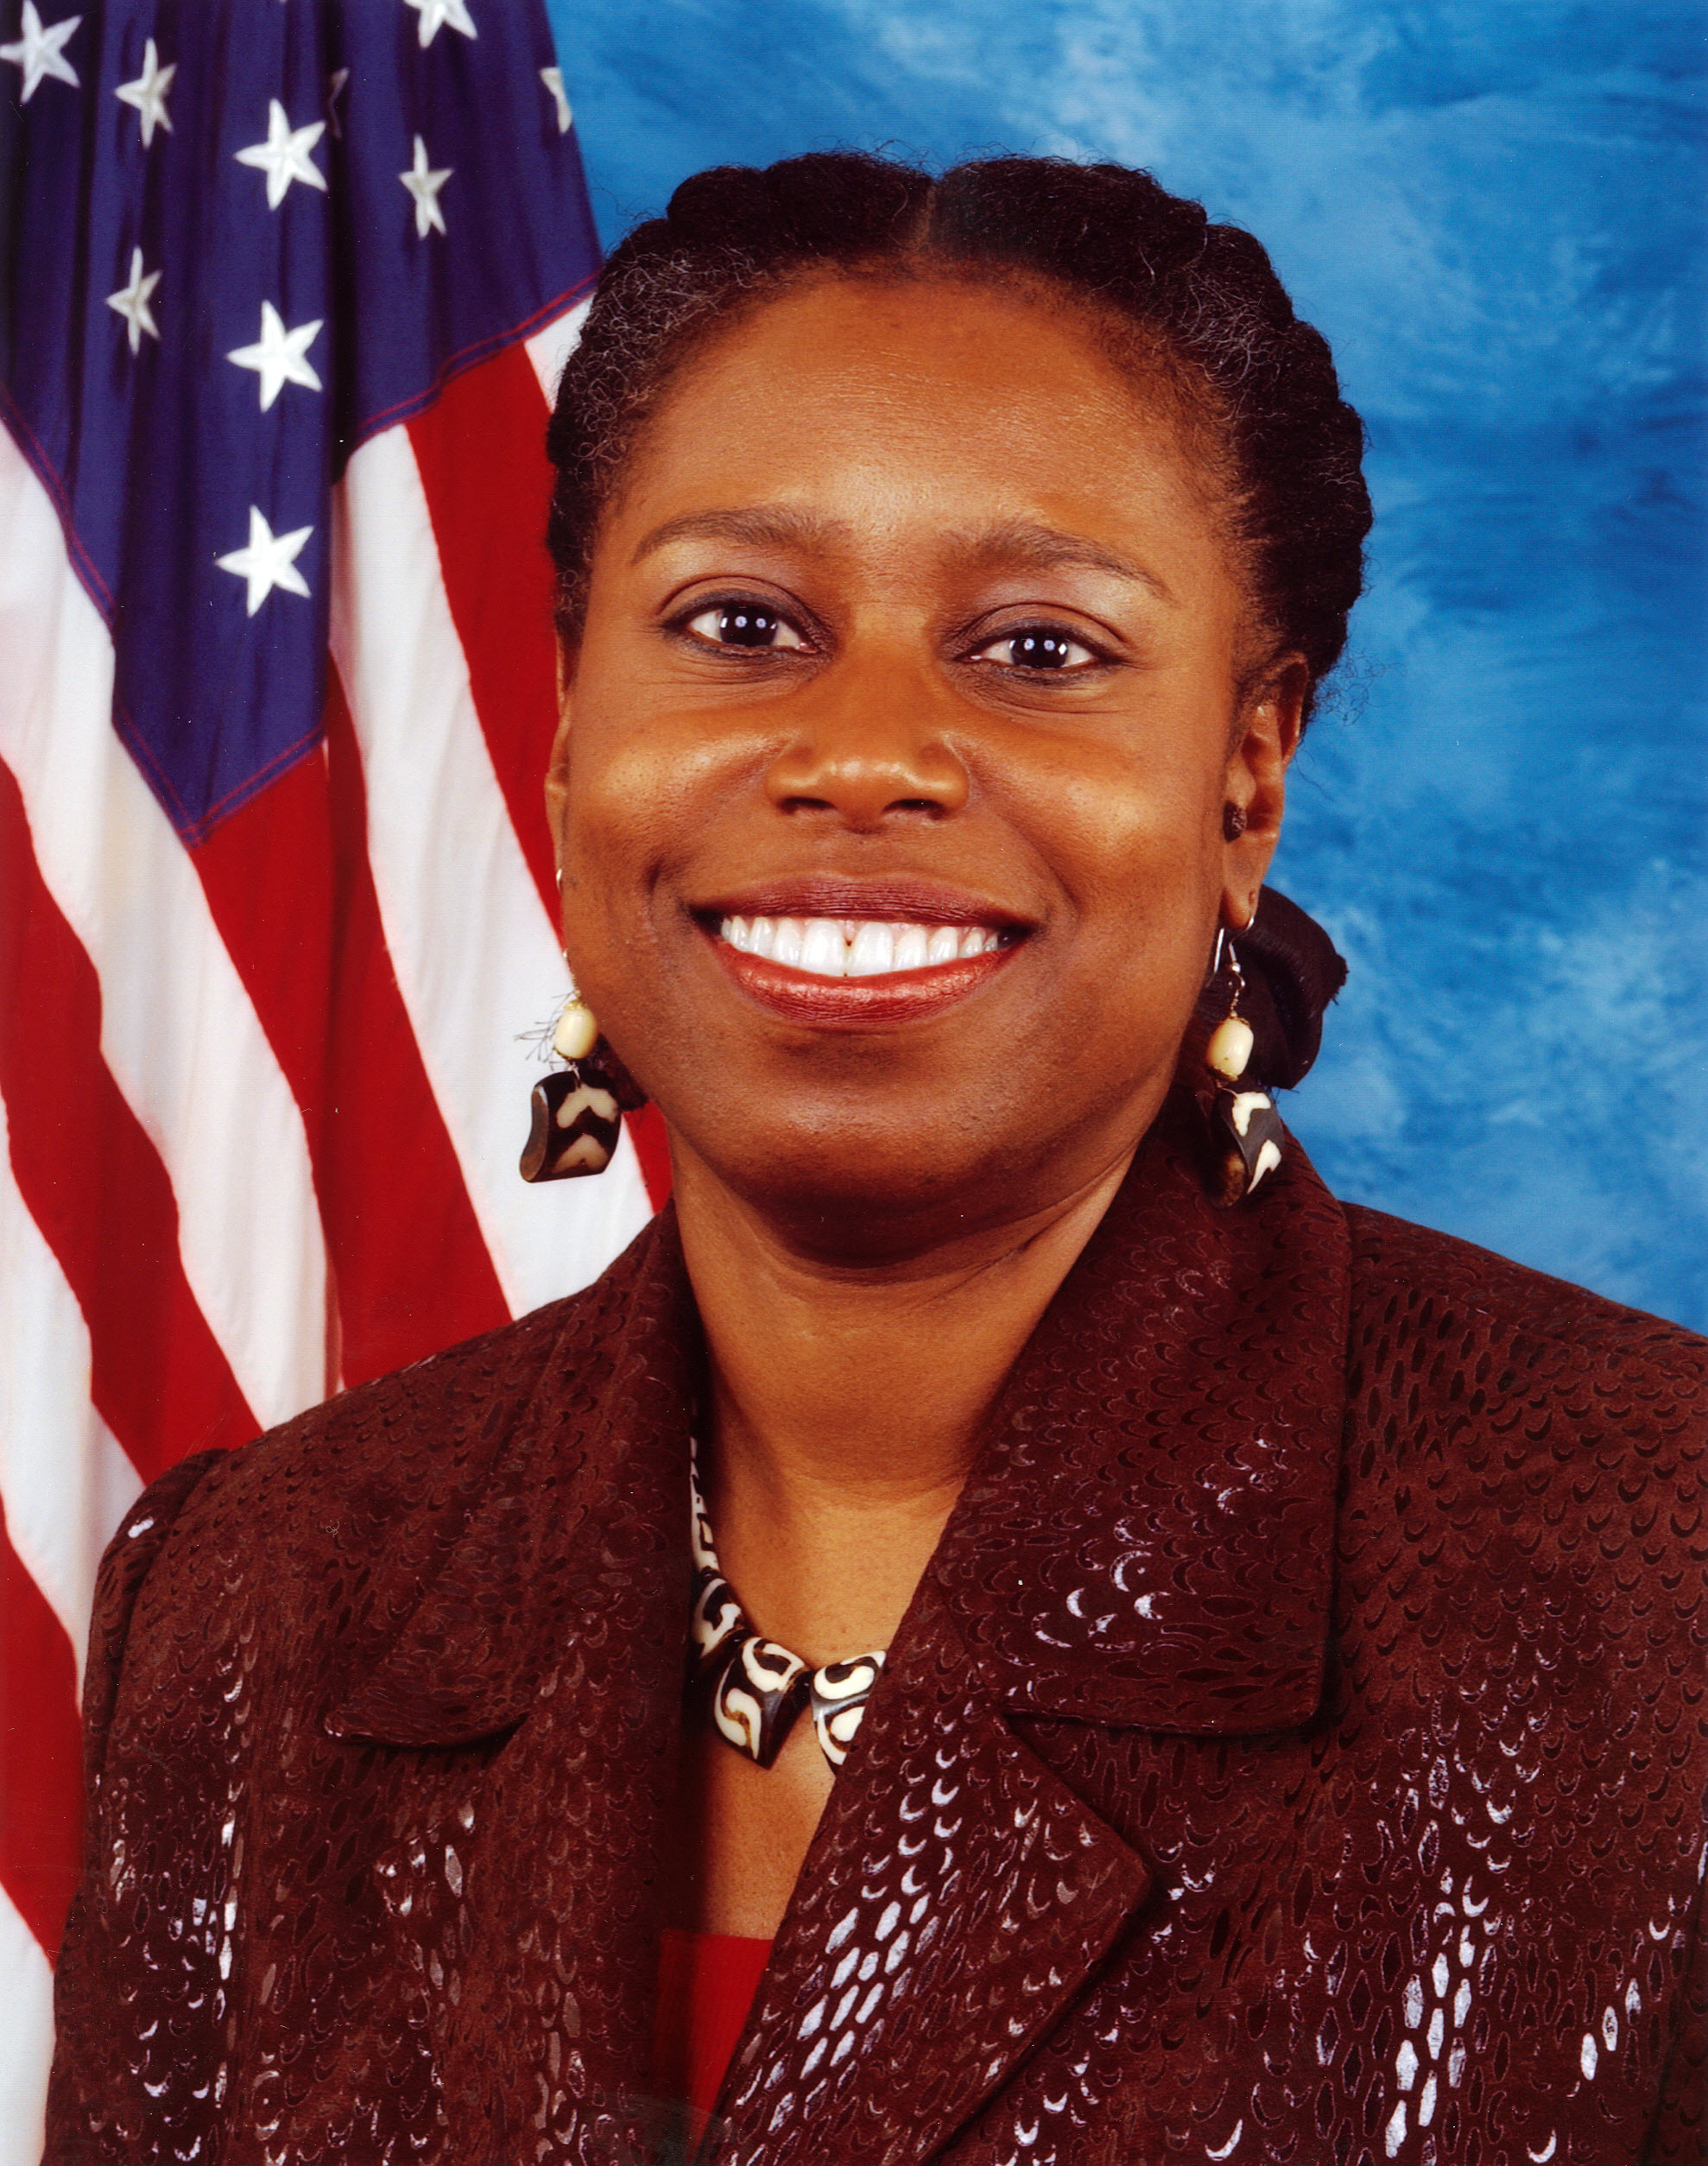 Former GA Rep. Cynthia McKinney to Run for Old Congressional Seat on Green Party Ticket